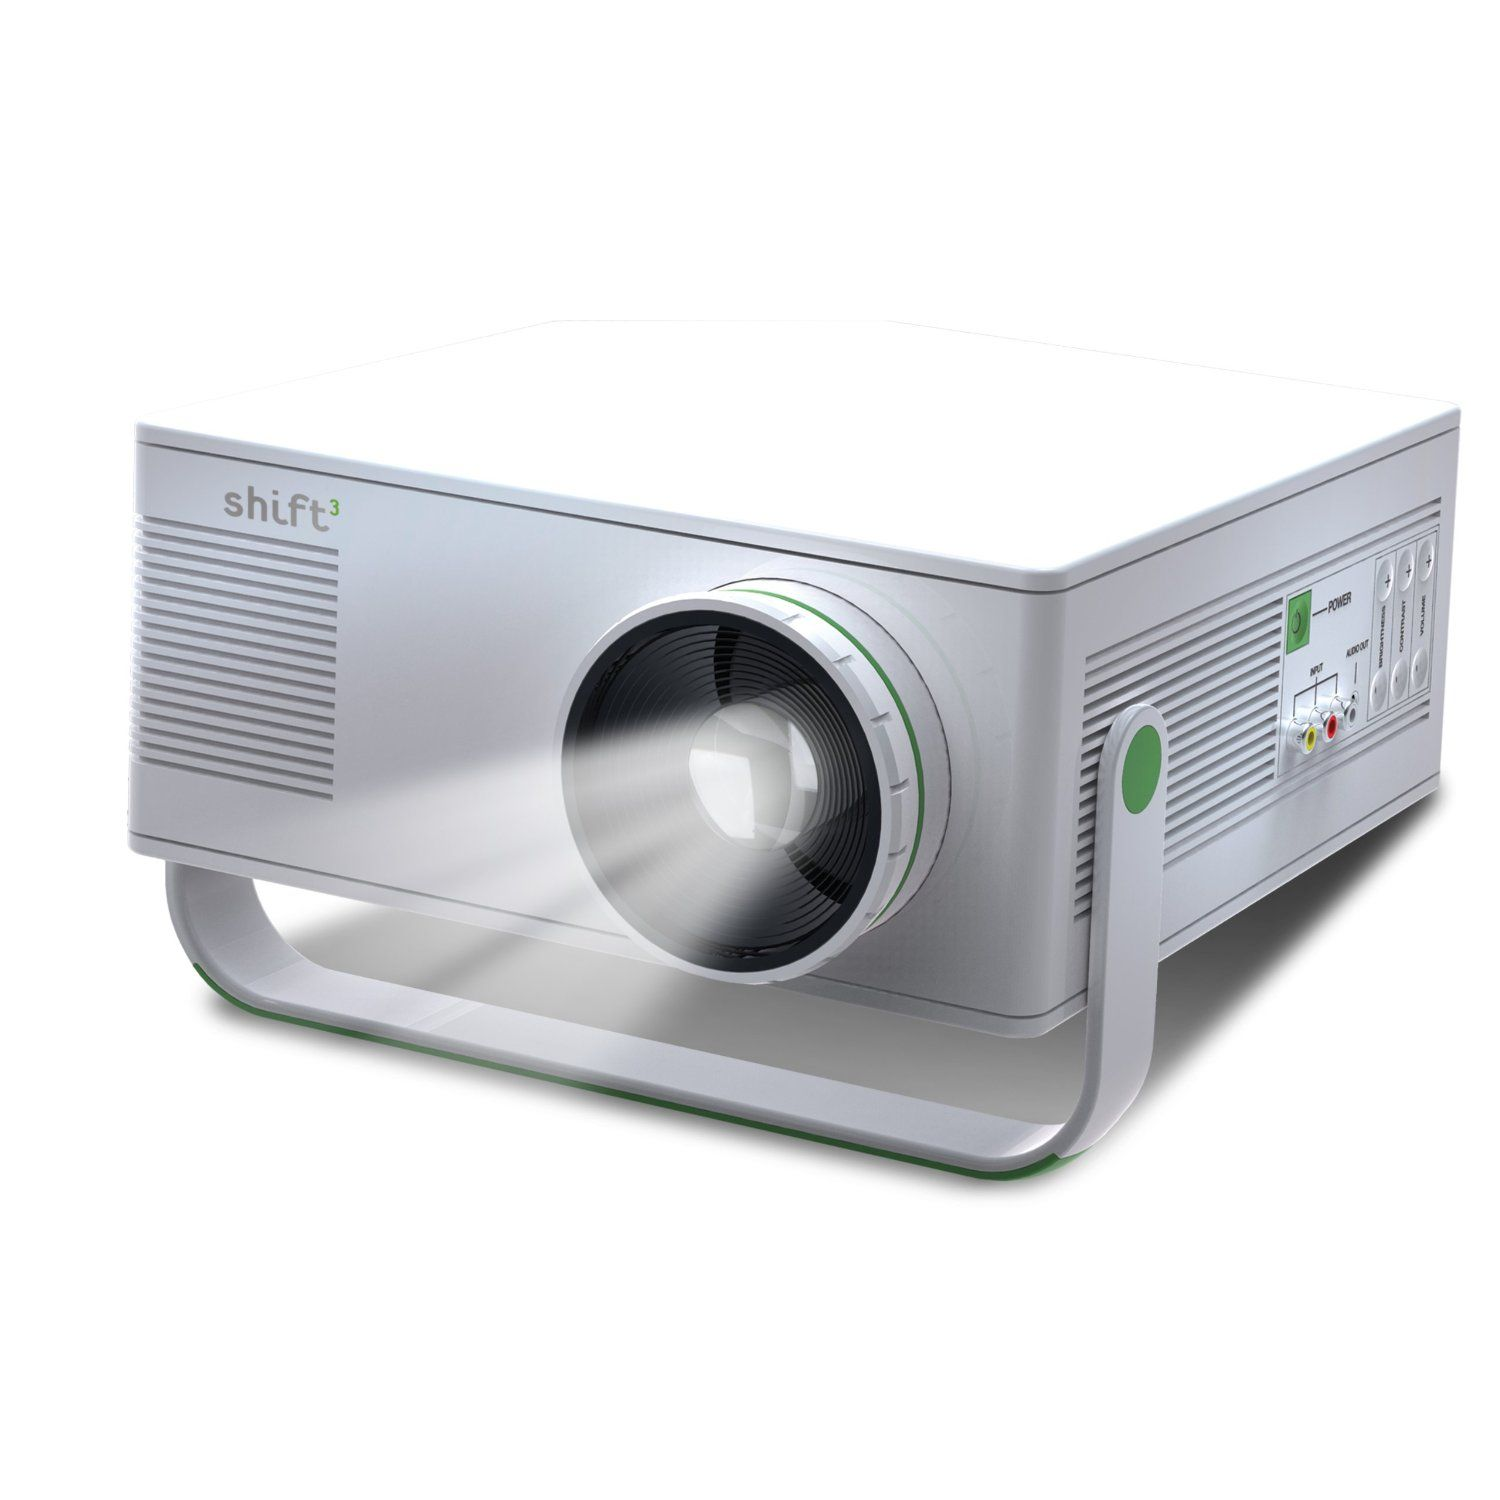 Shift 2 Light Blast Entertainment Project. I don't care what kind of projector, but this one is cheap. Projects images up to 120 inches on walls or ceilings. don't even need a projector screen to watch movies. Perfect.